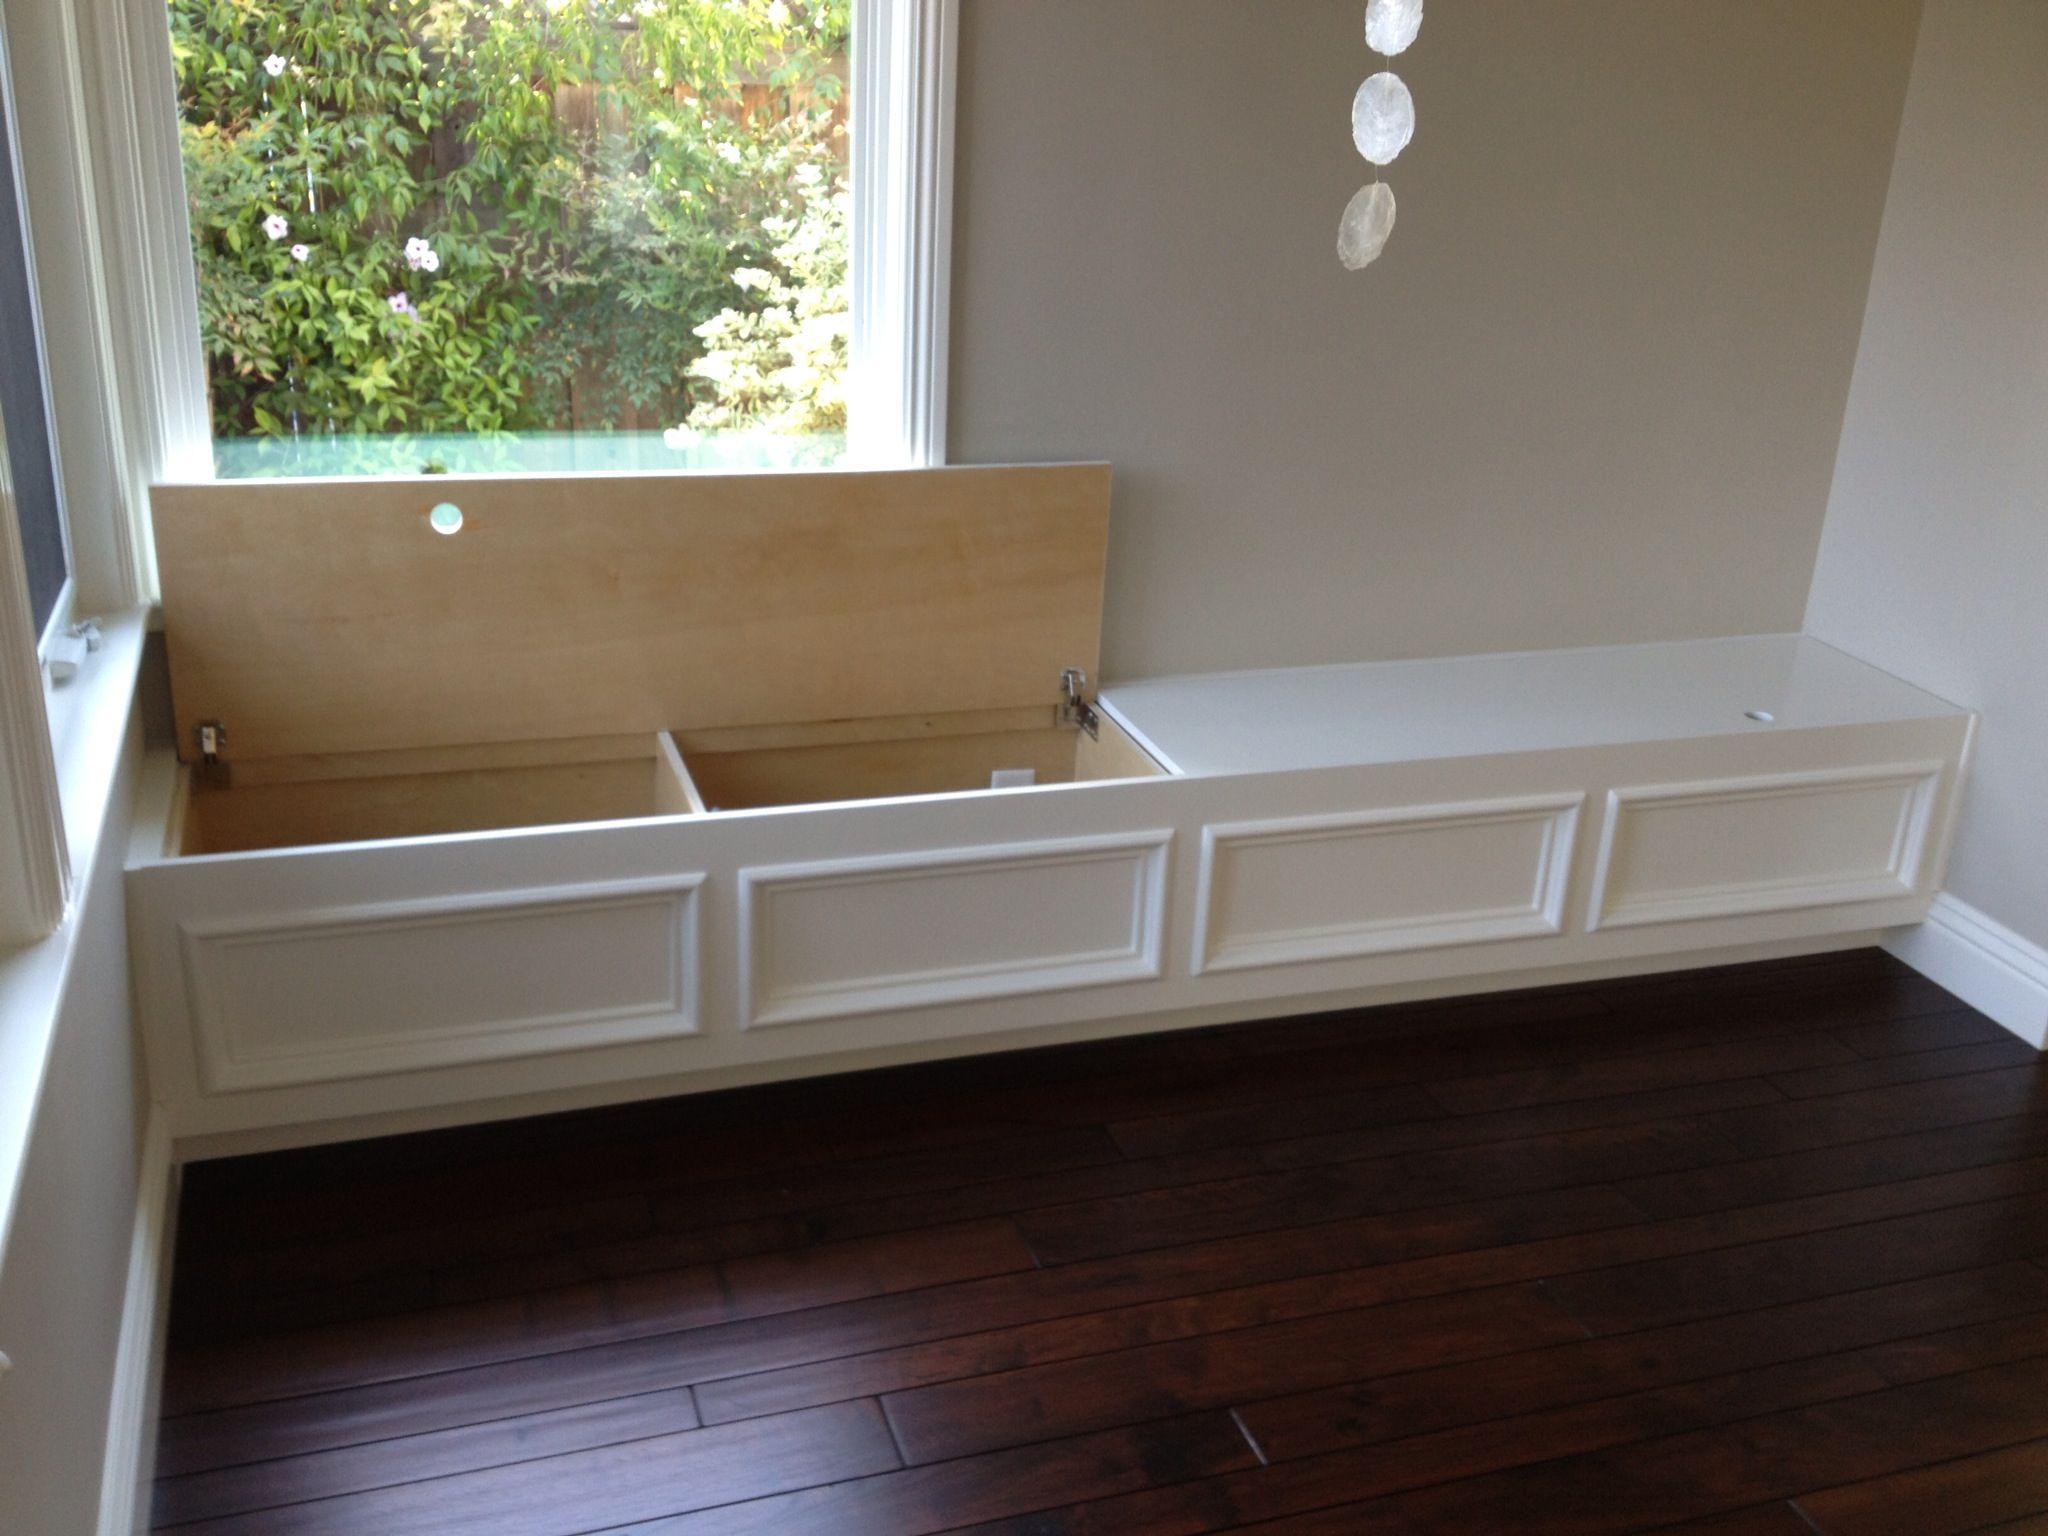 Storage Benches For Living Room Built In Bench Seat With Storage Put Along Wall In Family Room